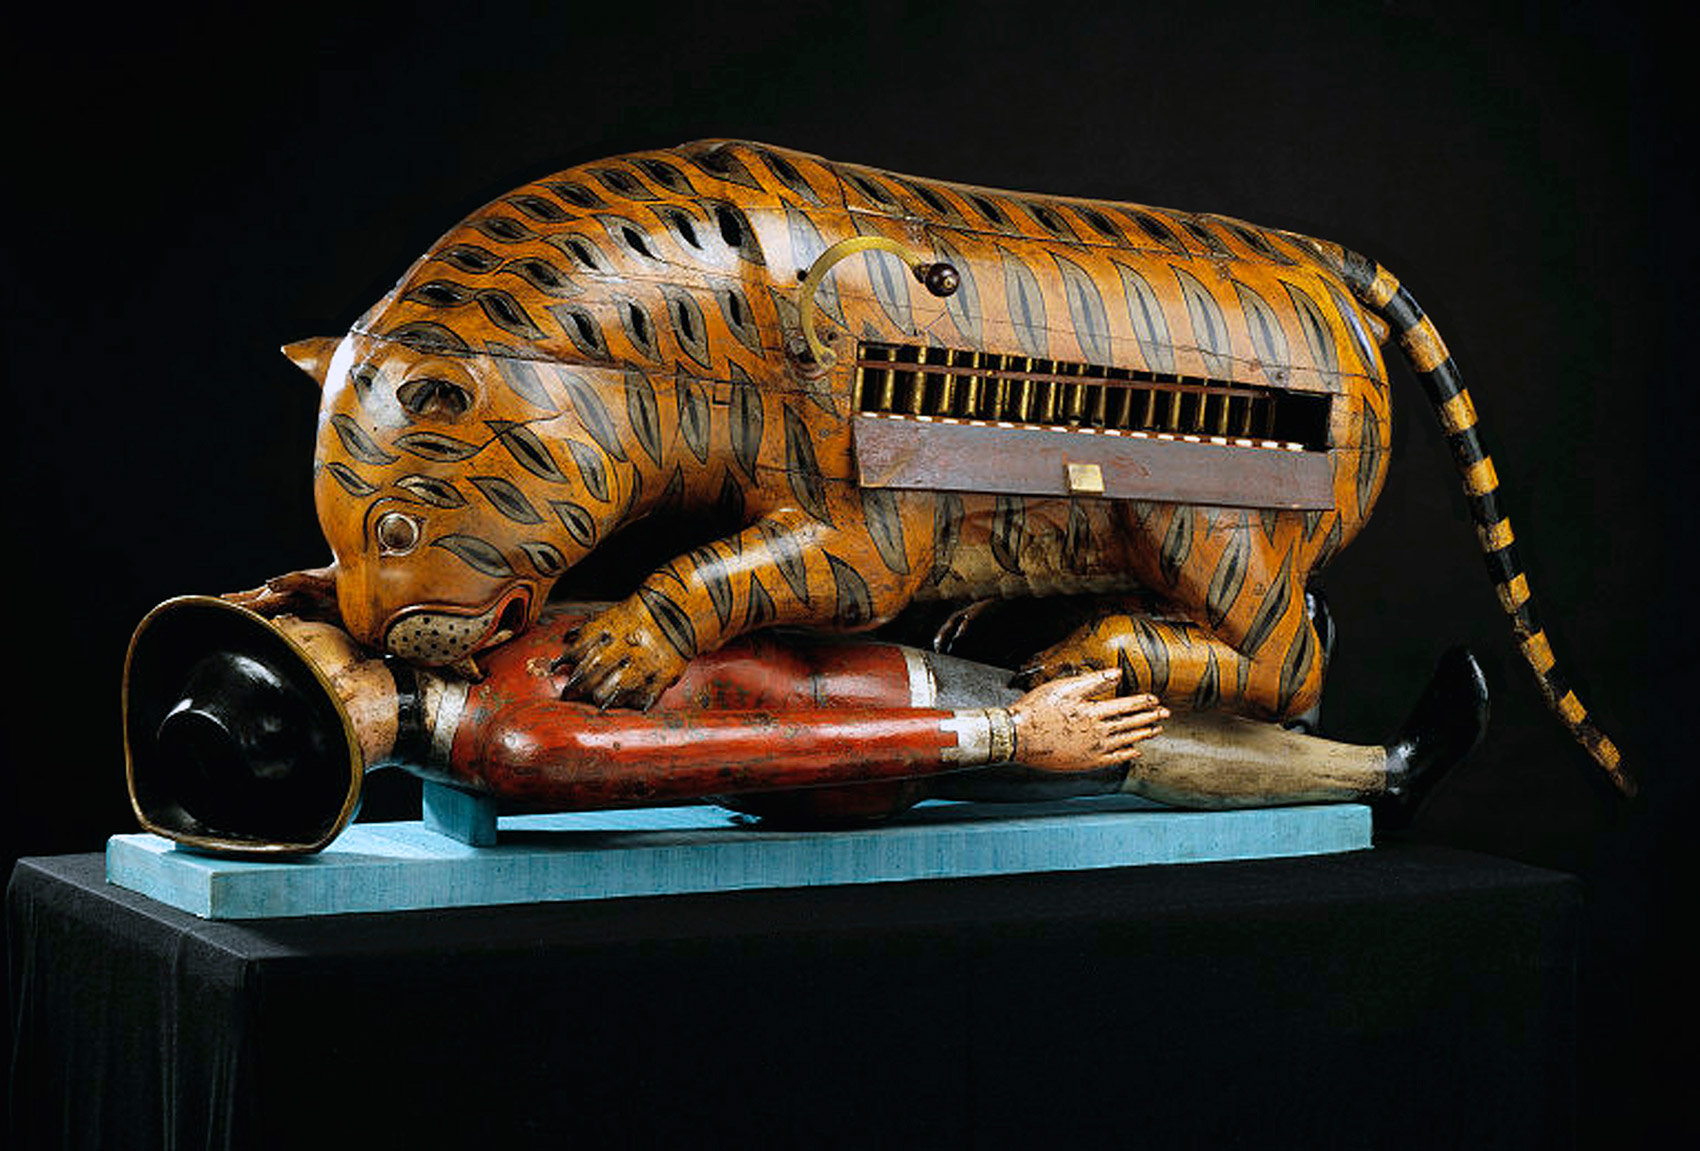 Tipu's Tiger, an automaton representing a tiger mauling a British soldier, c.1790